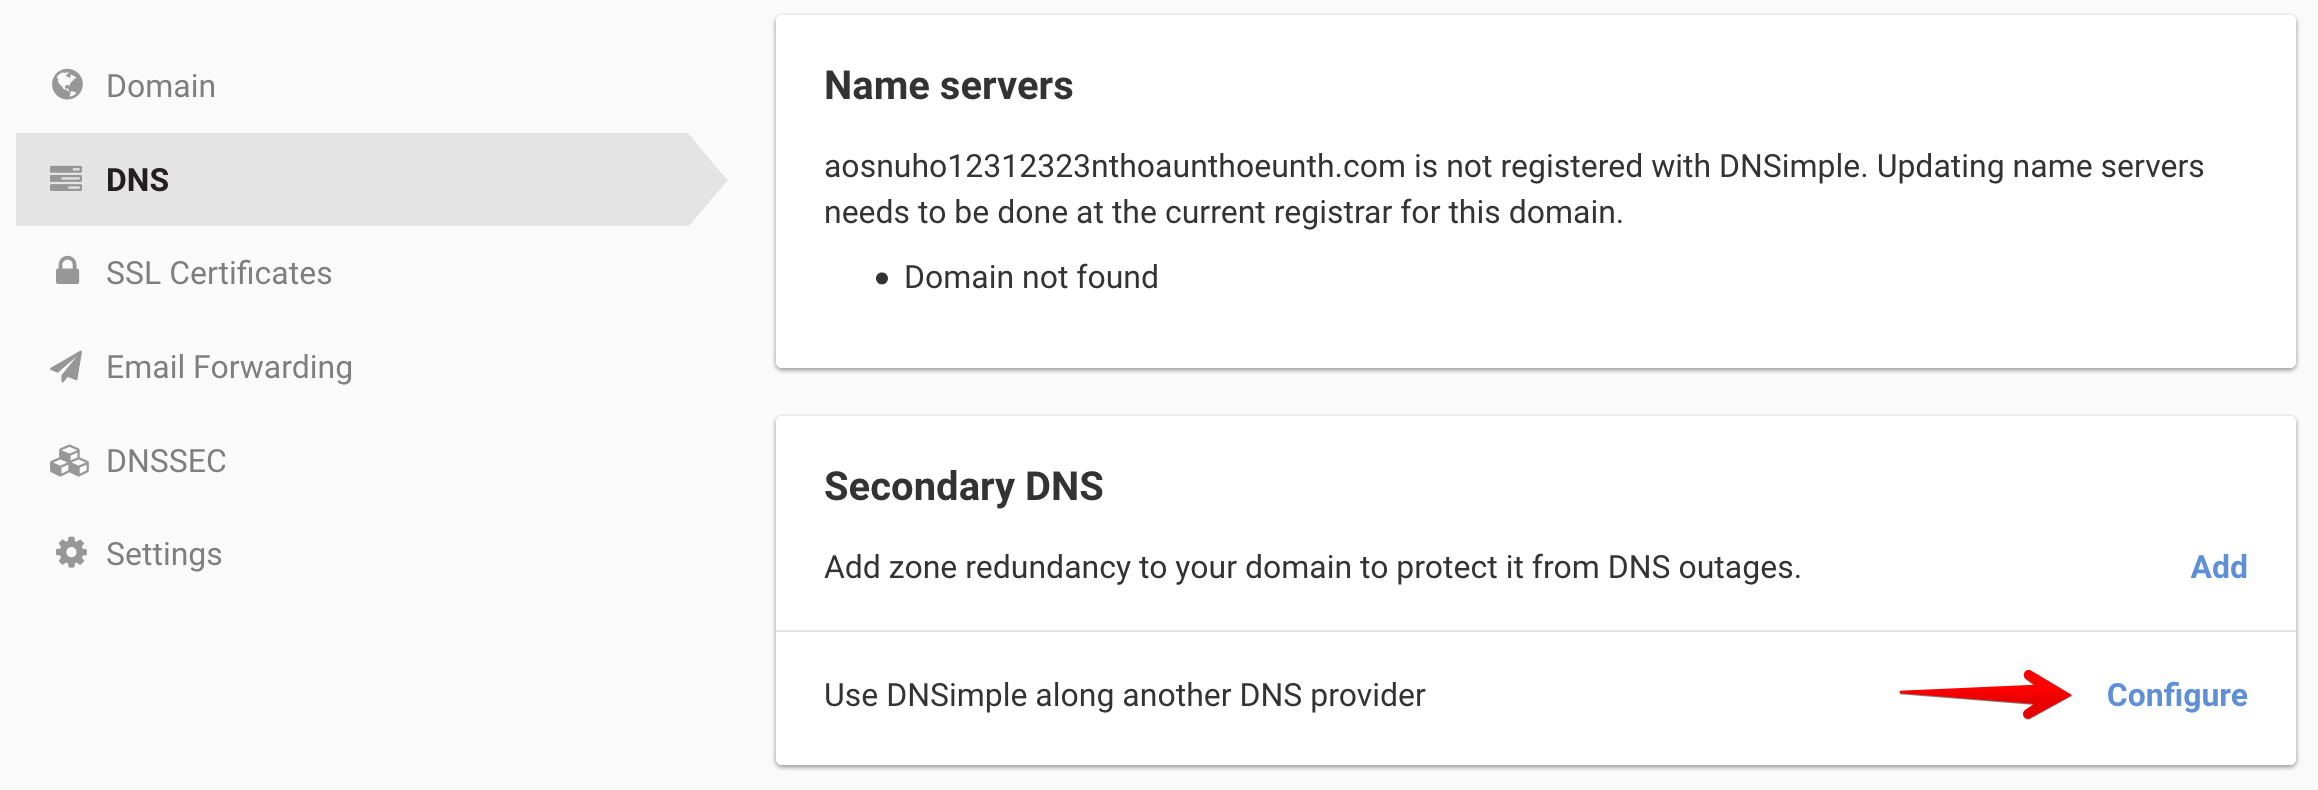 Change you Secondary DNS configuration